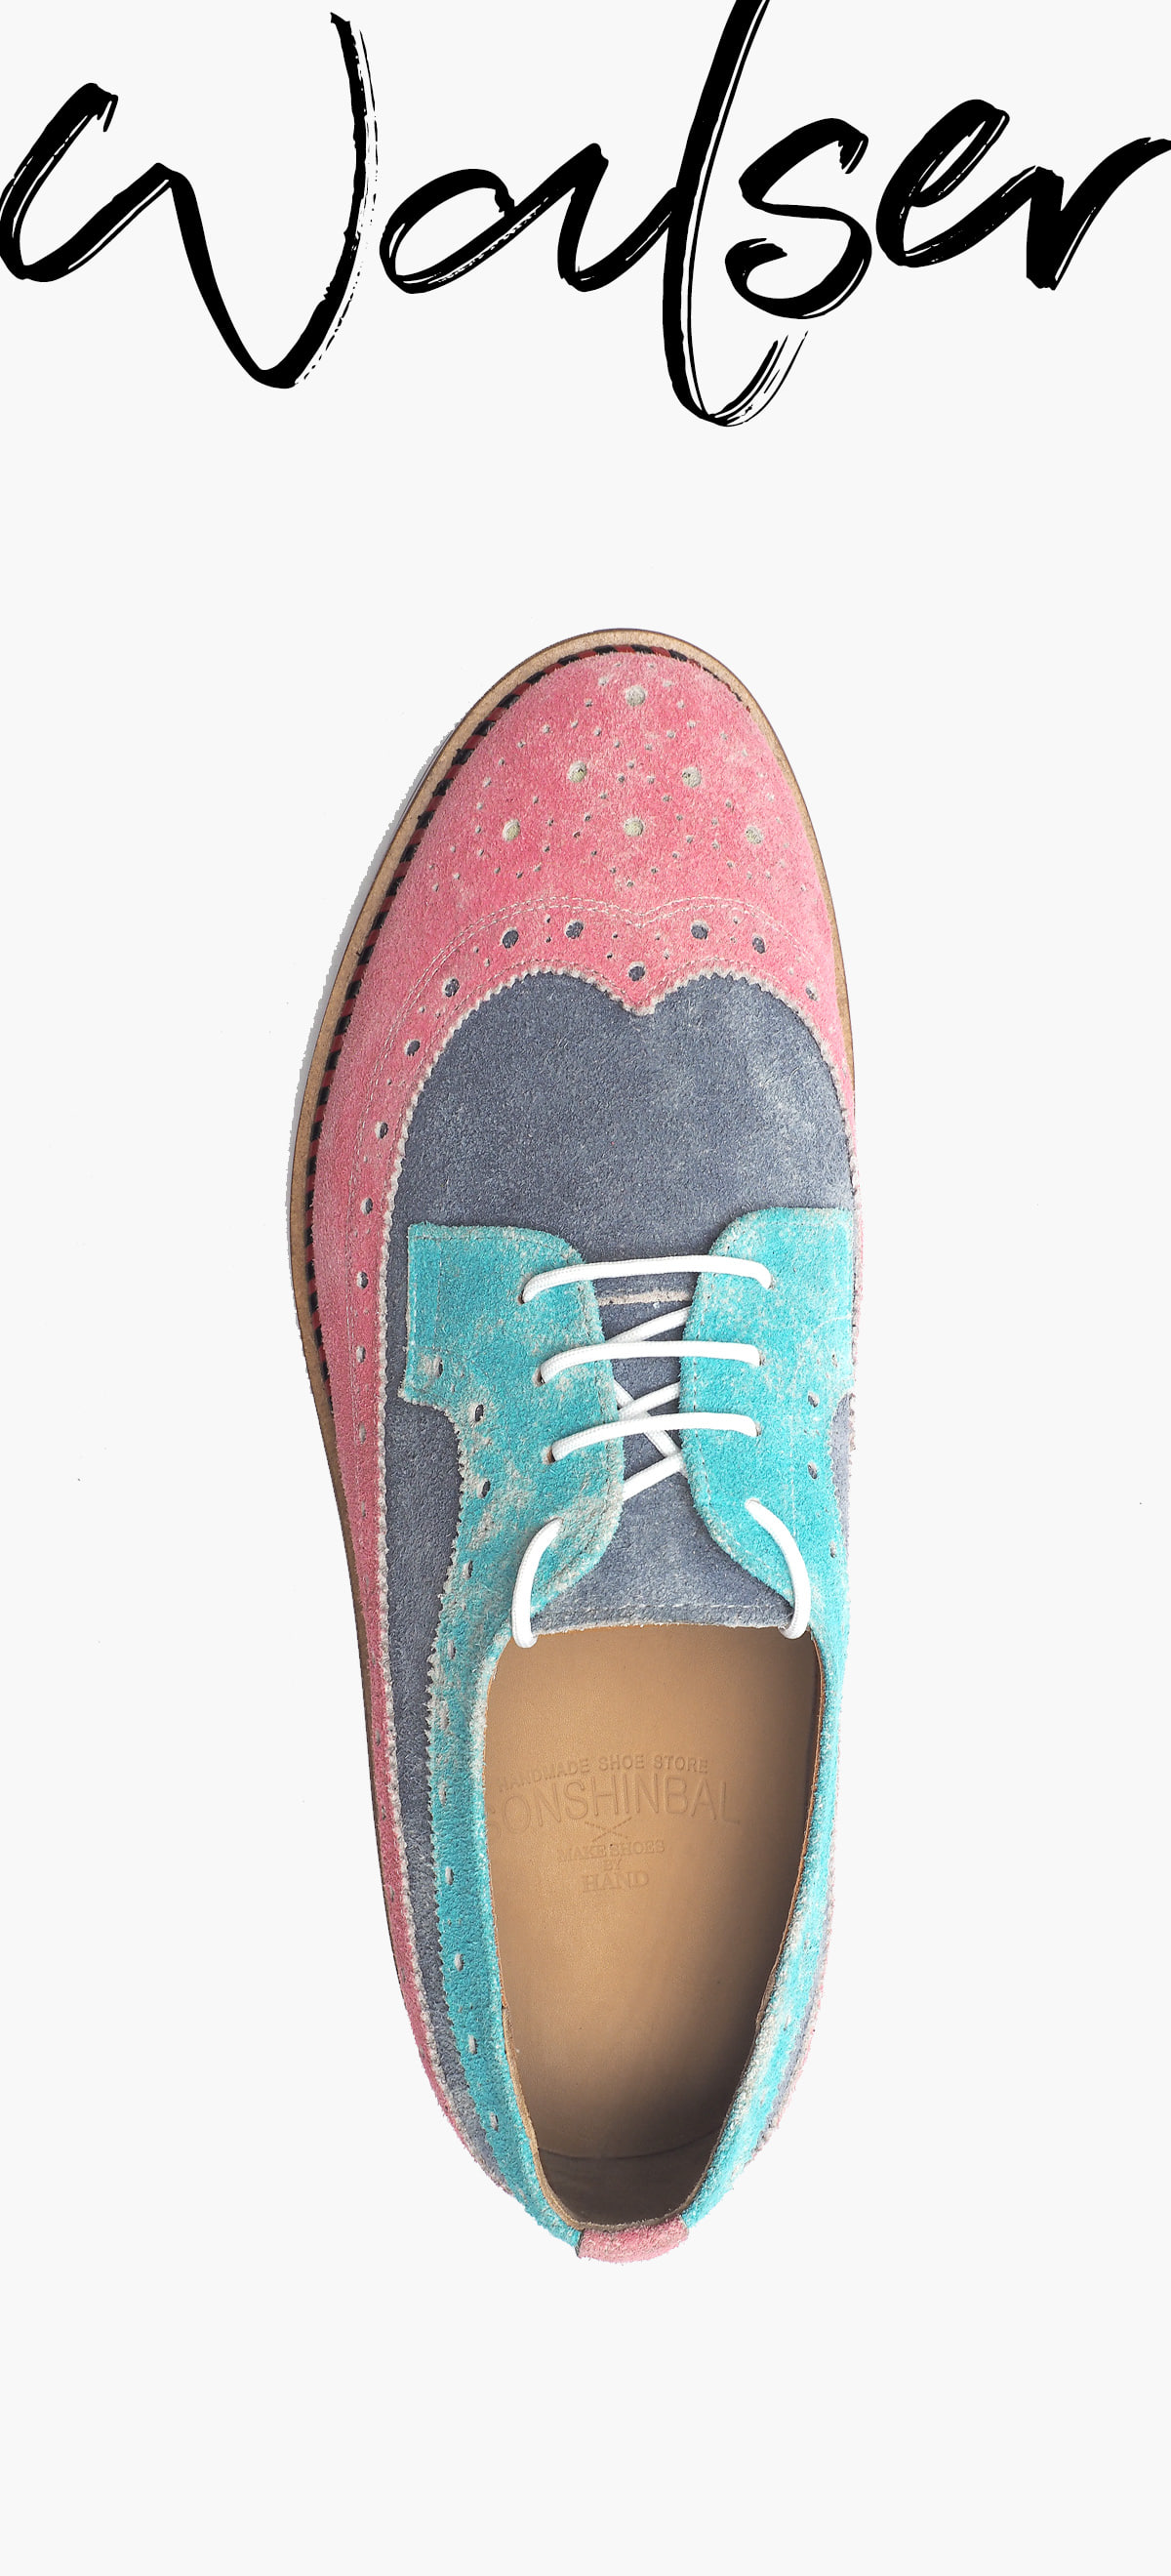 Wing Tip 0027-RW04 Suede MULTI COLOR